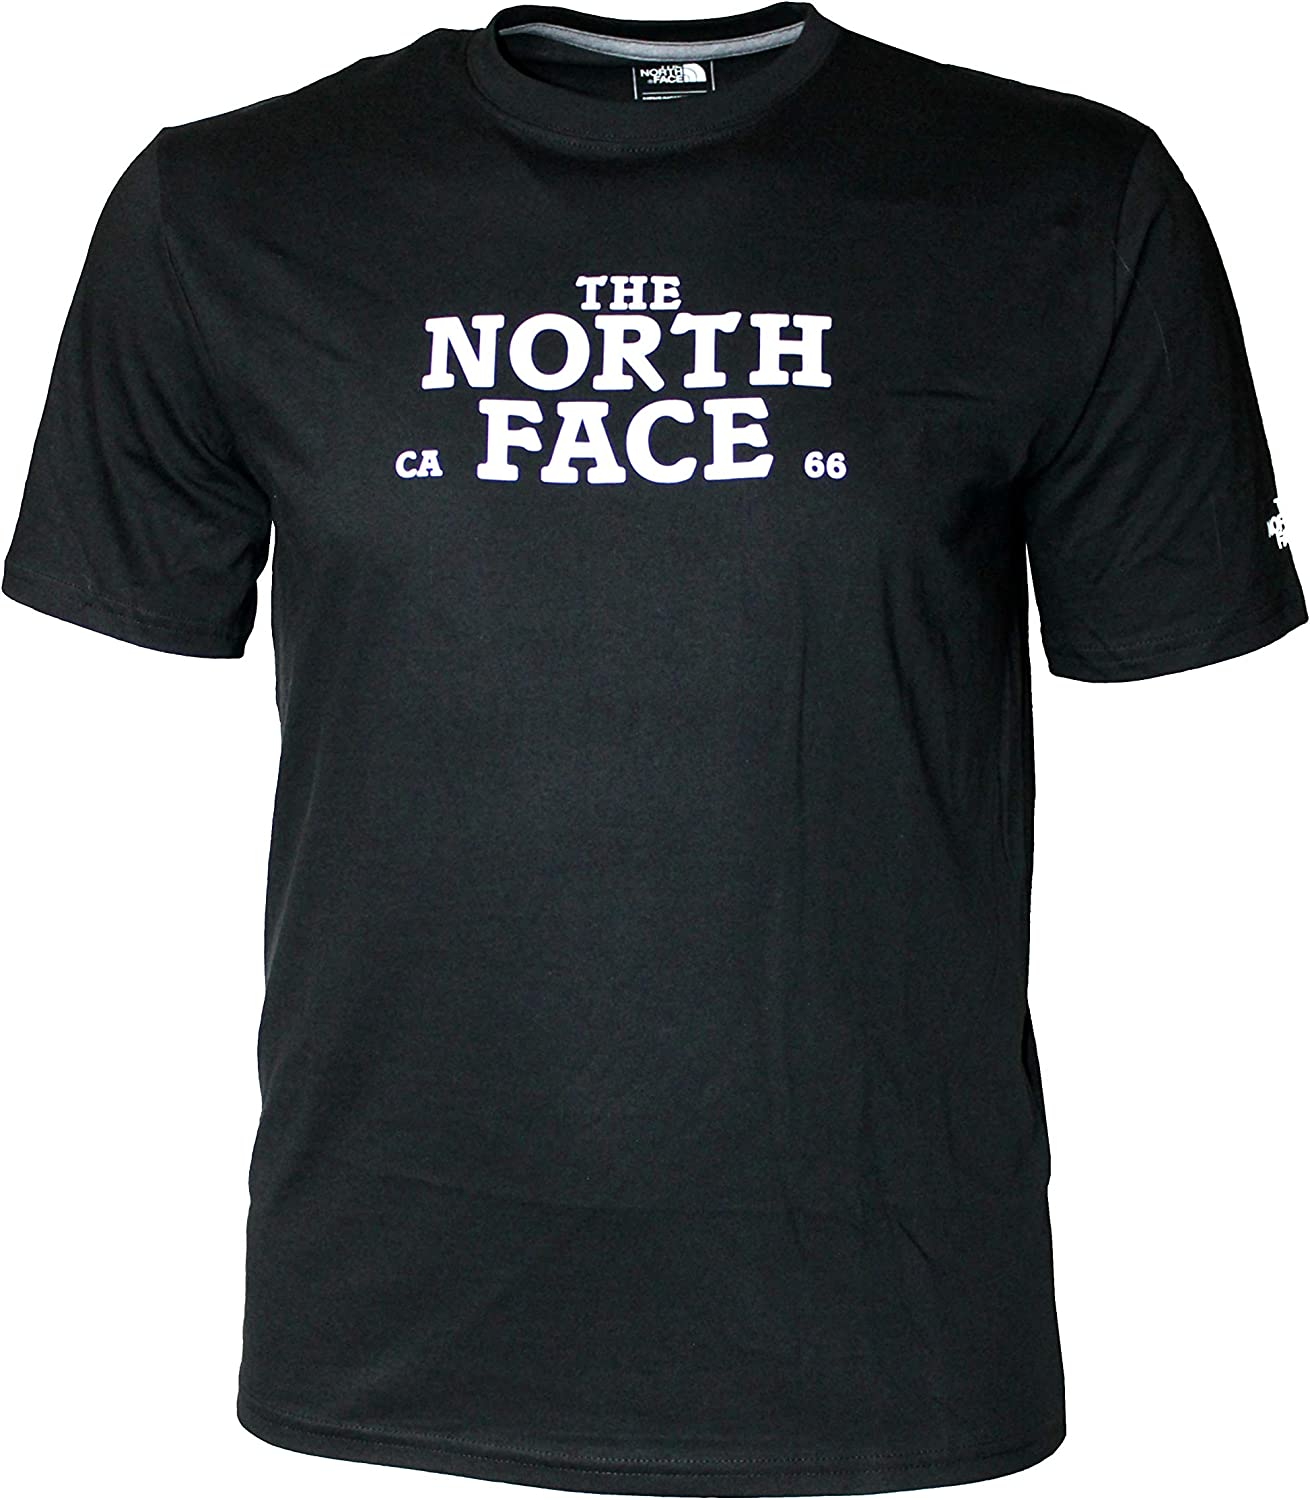 THE NORTH FACE Men's Novelty Tee Cotton T Shirt